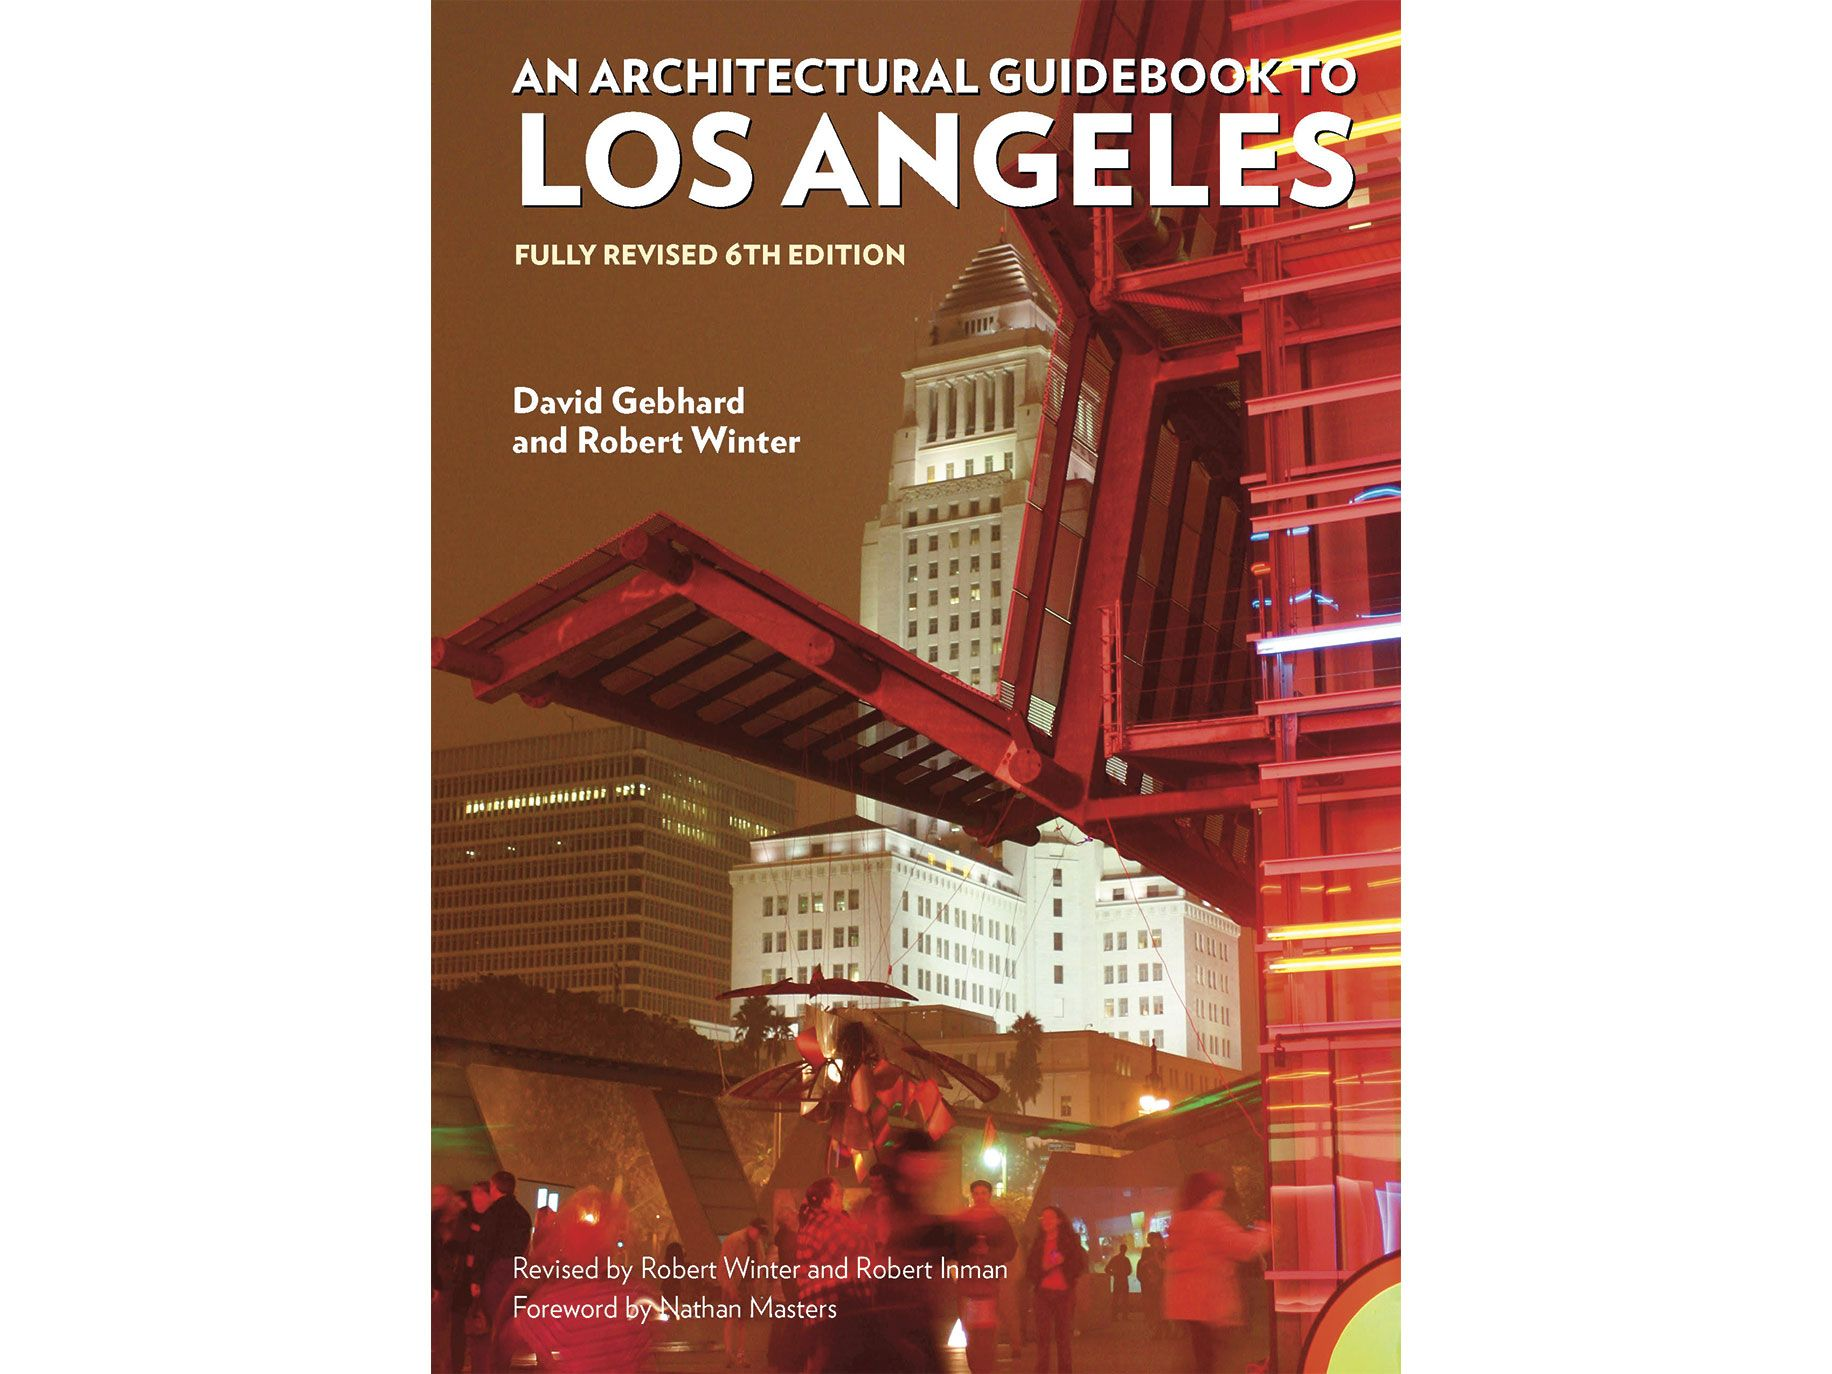 The latest edition of Robert Winter's <em>An Architectural Guidebook to Los Angeles.</em>